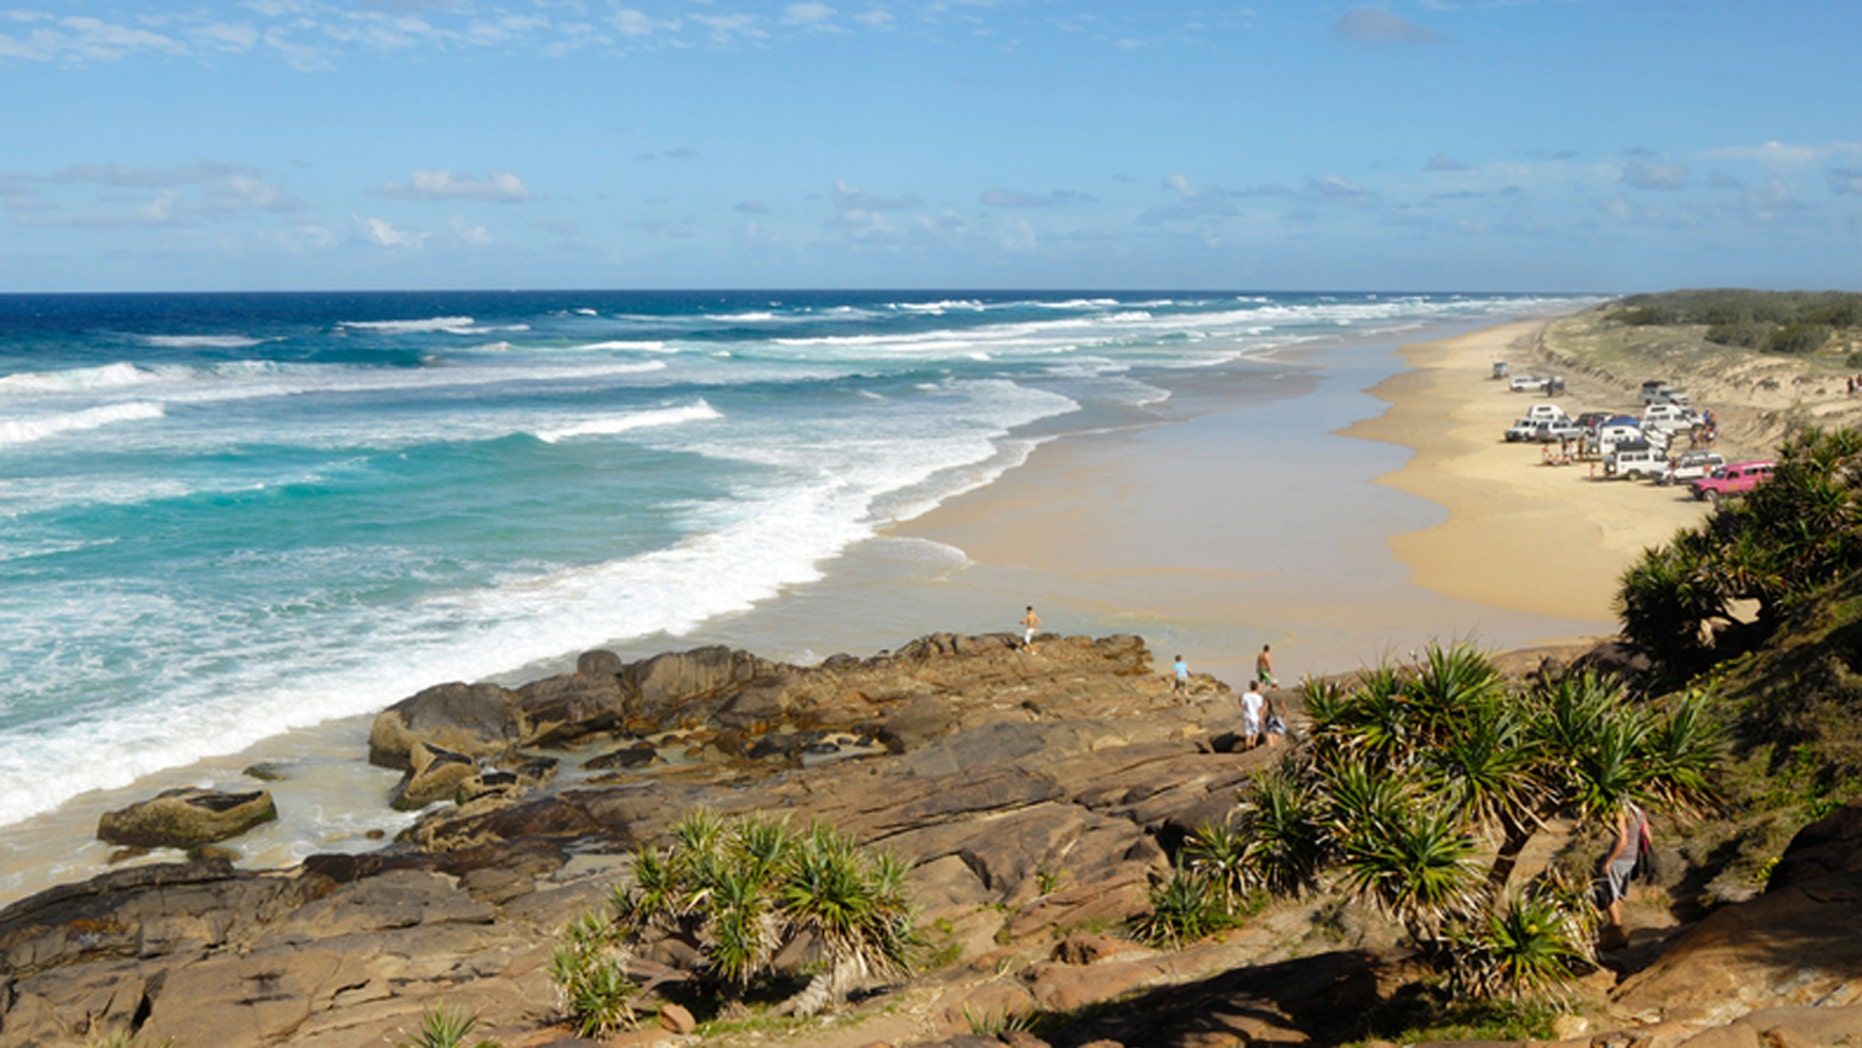 Fraser Island, Queensland Australia is known for its lush natural features and wildlife.